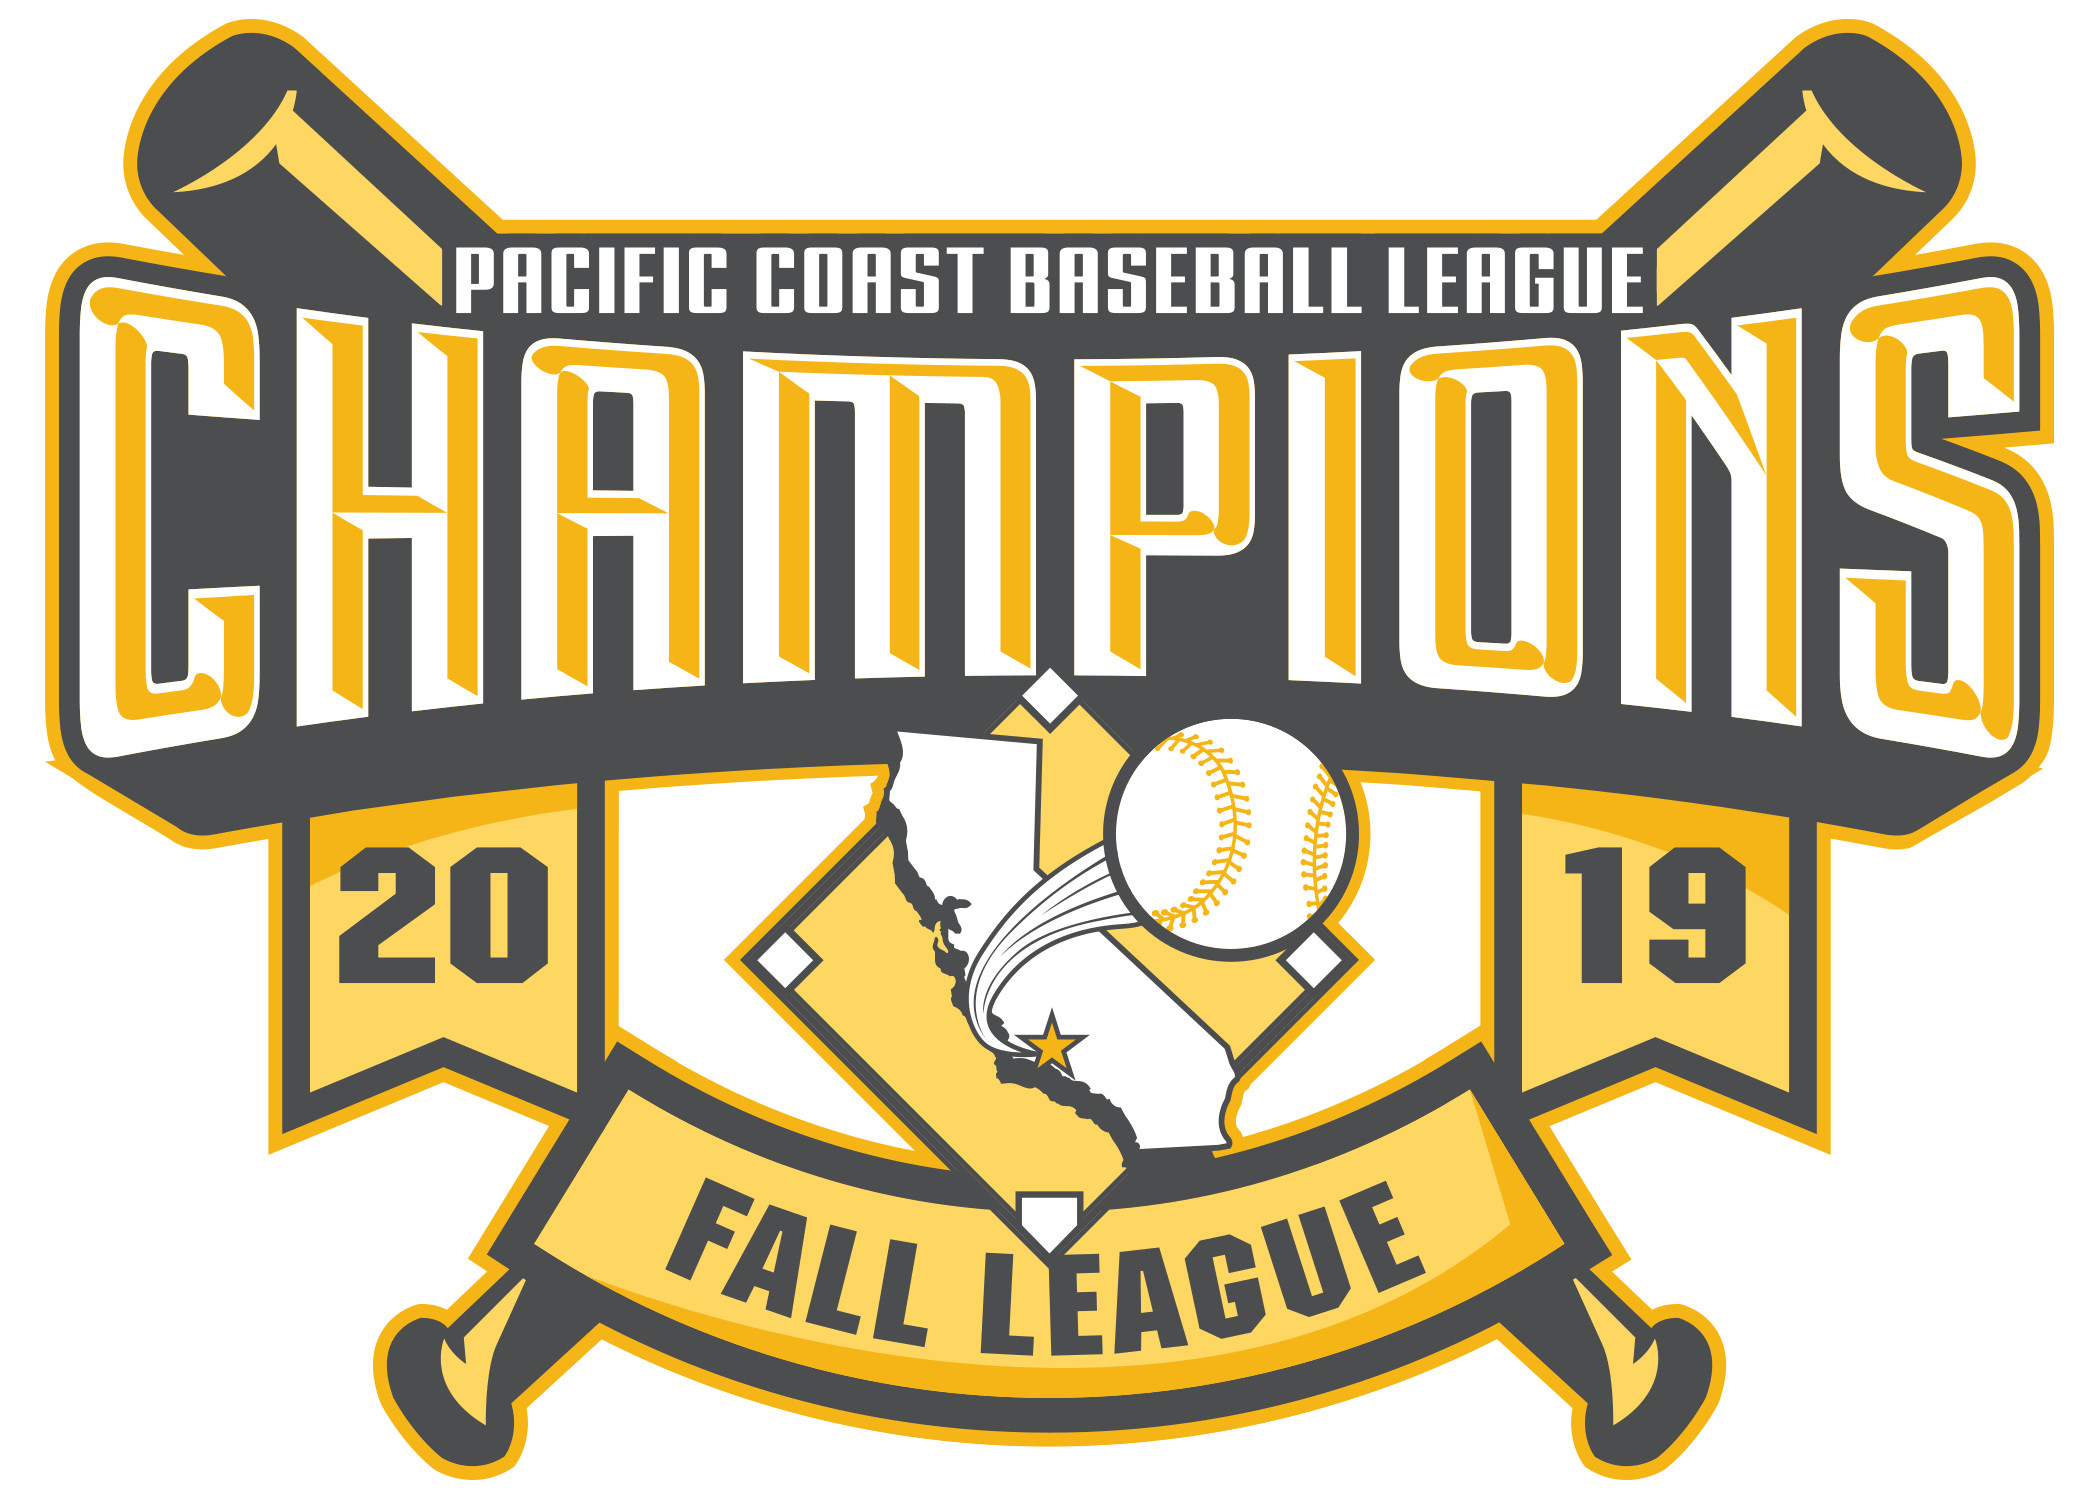 2019 Fall League Champions